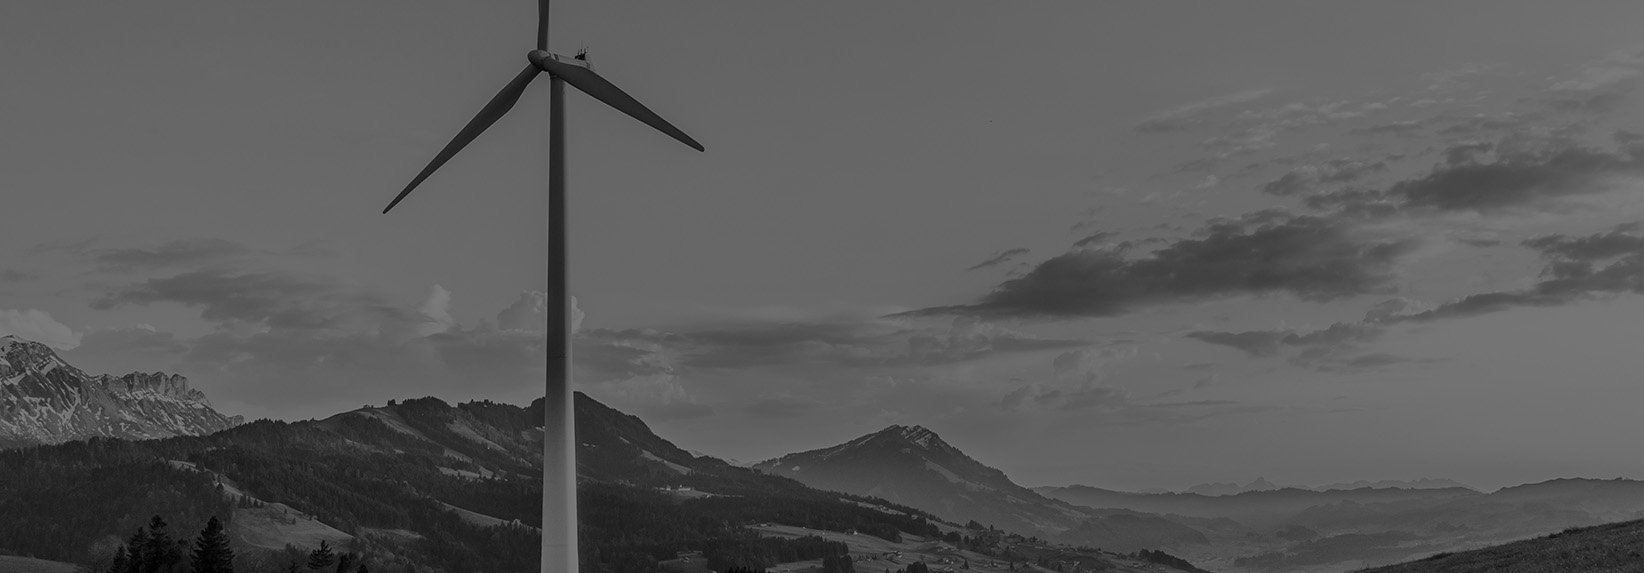 Endeavor Energy Resources Continues to Modernize its Operations with Datadobi